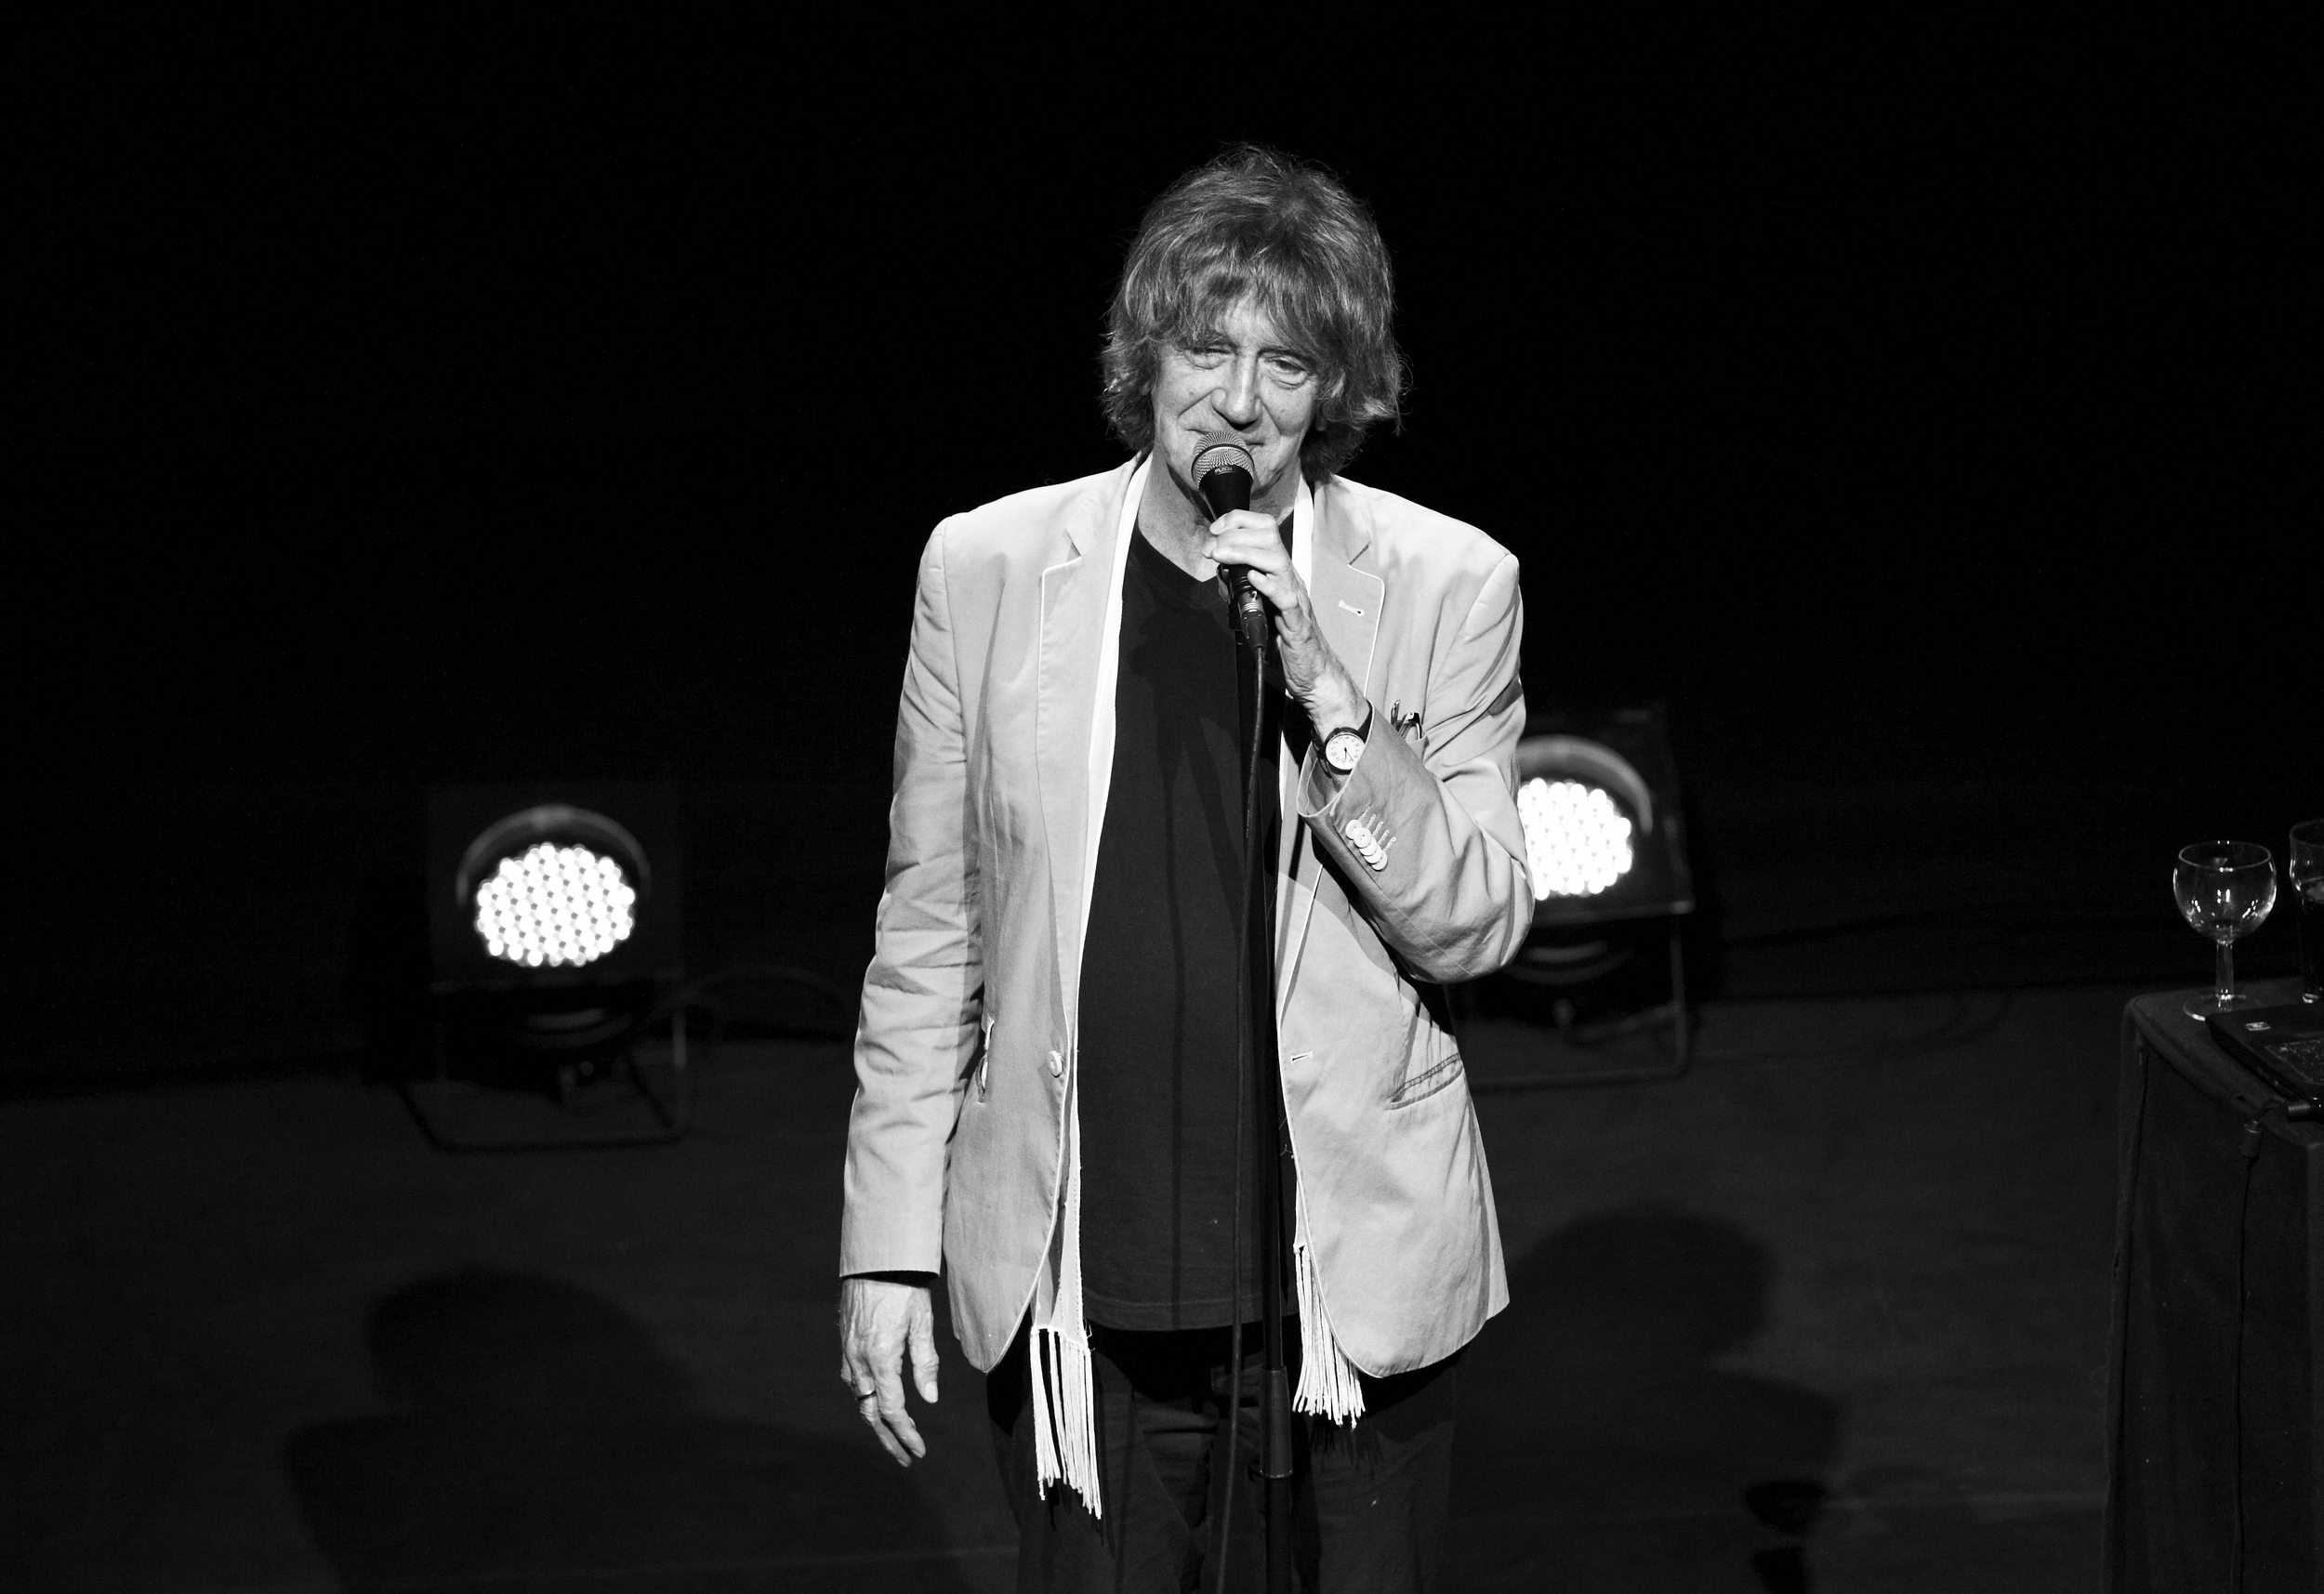 Howard Marks on stage at the Bloomsbury Theatre 2013